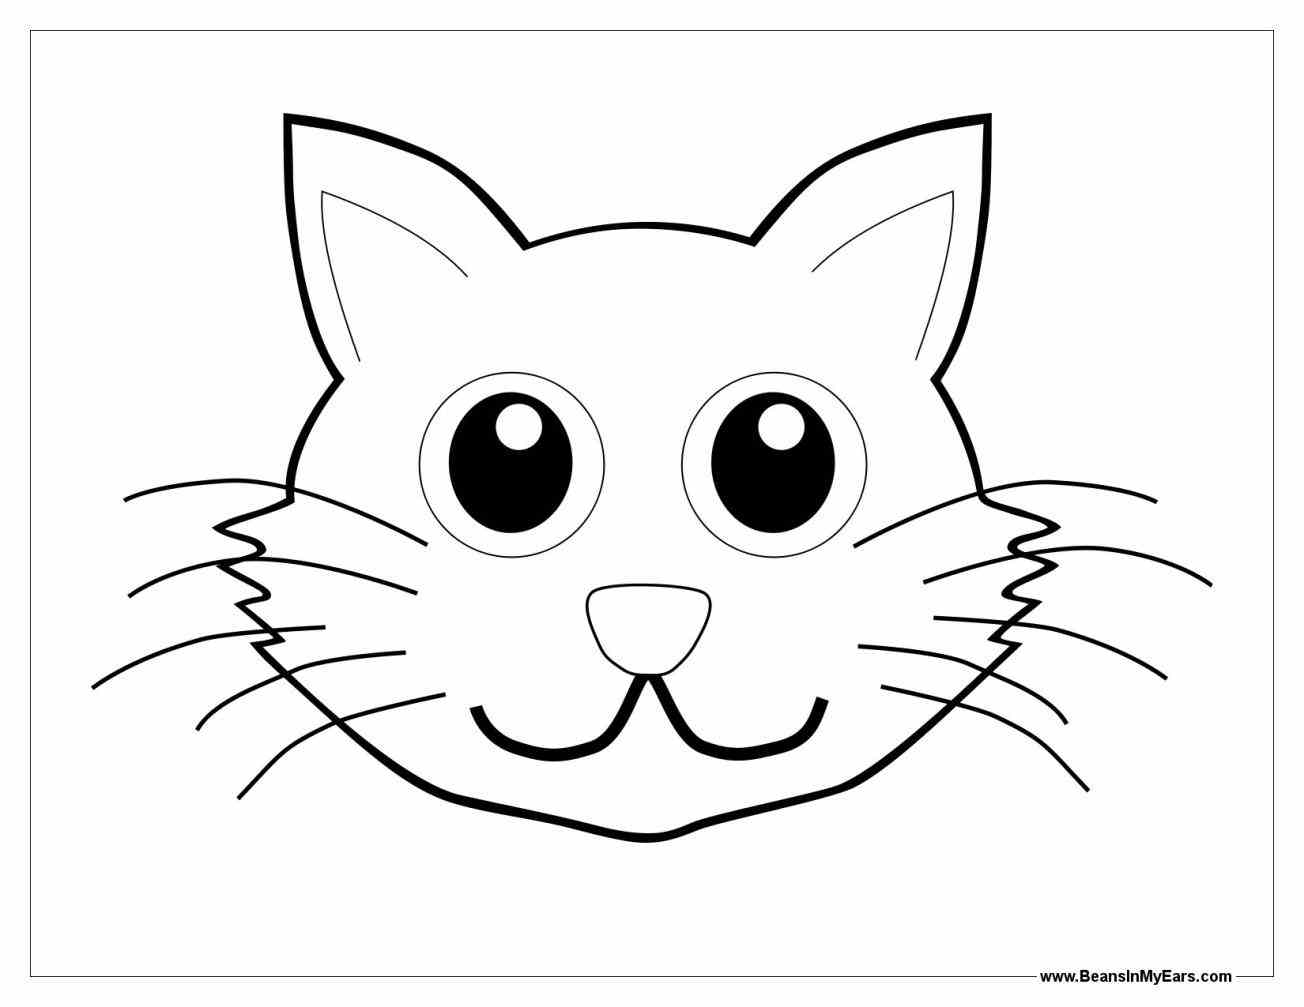 Easy Cat Face Drawing At Getdrawings